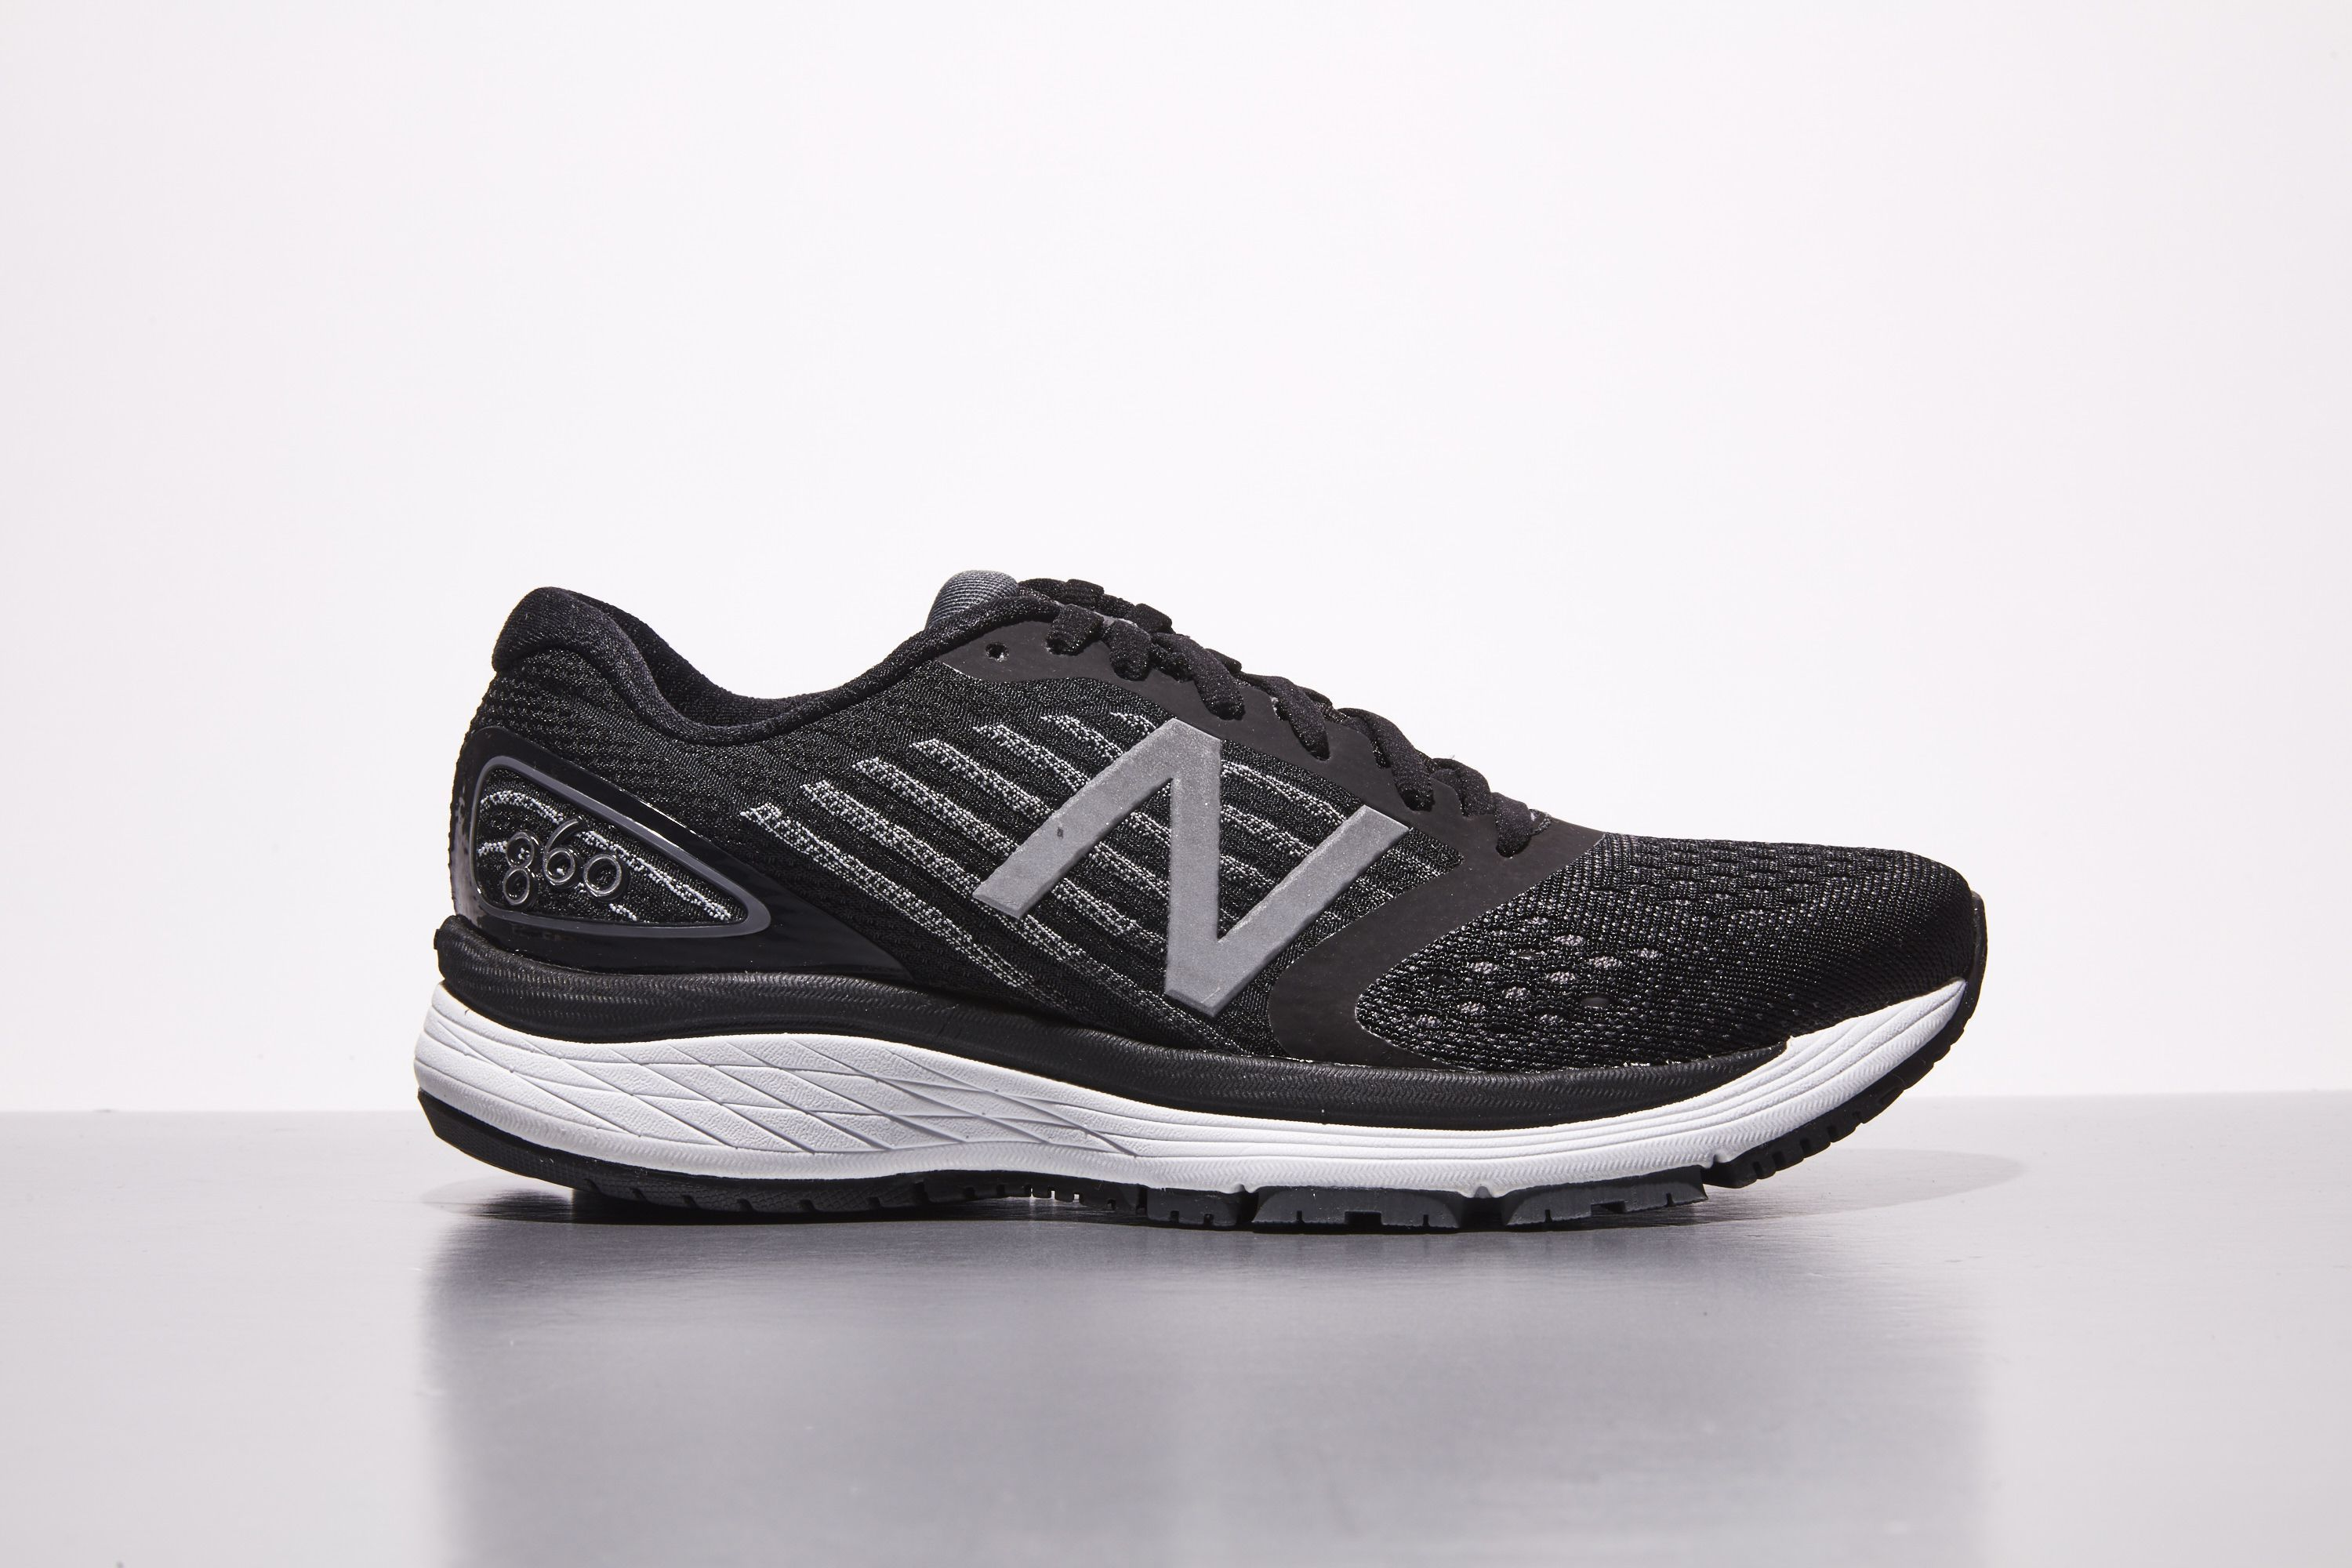 New Balance 860v9 Review Moderate Stability Shoe Review